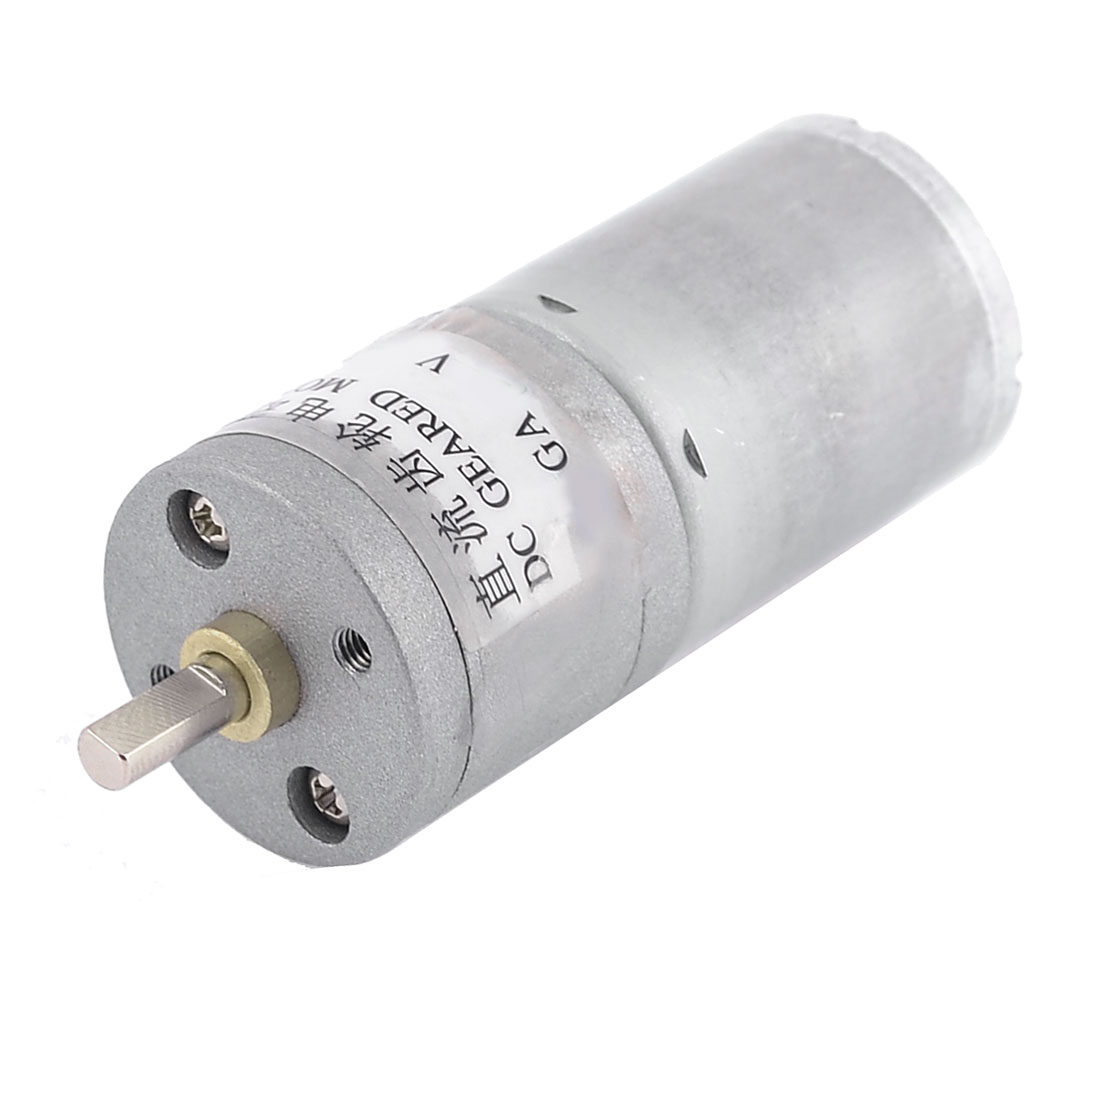 12V 120RPM Permanent Magnetism High Torque DC Gearbox Geared Motor